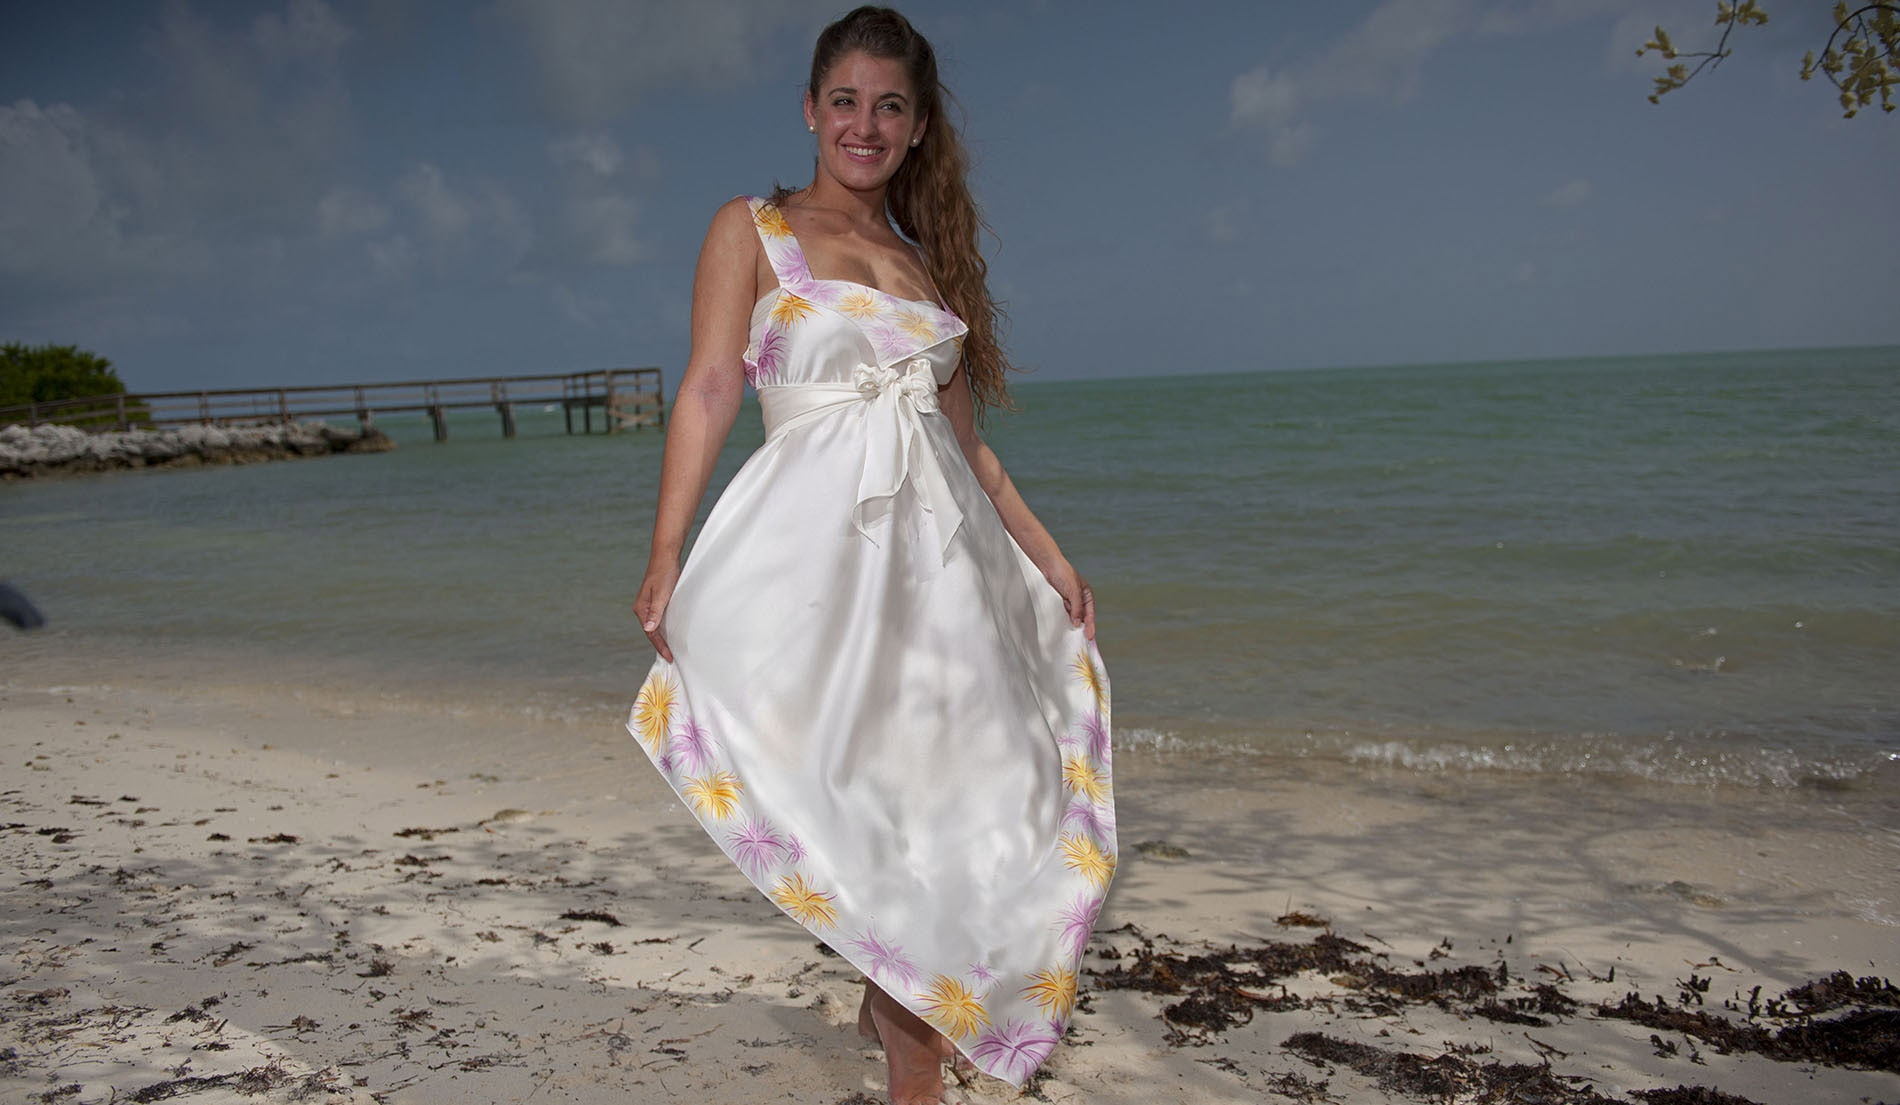 d009274531 ... Square Neck Second Wedding Dresses Beach - look 3 front ...